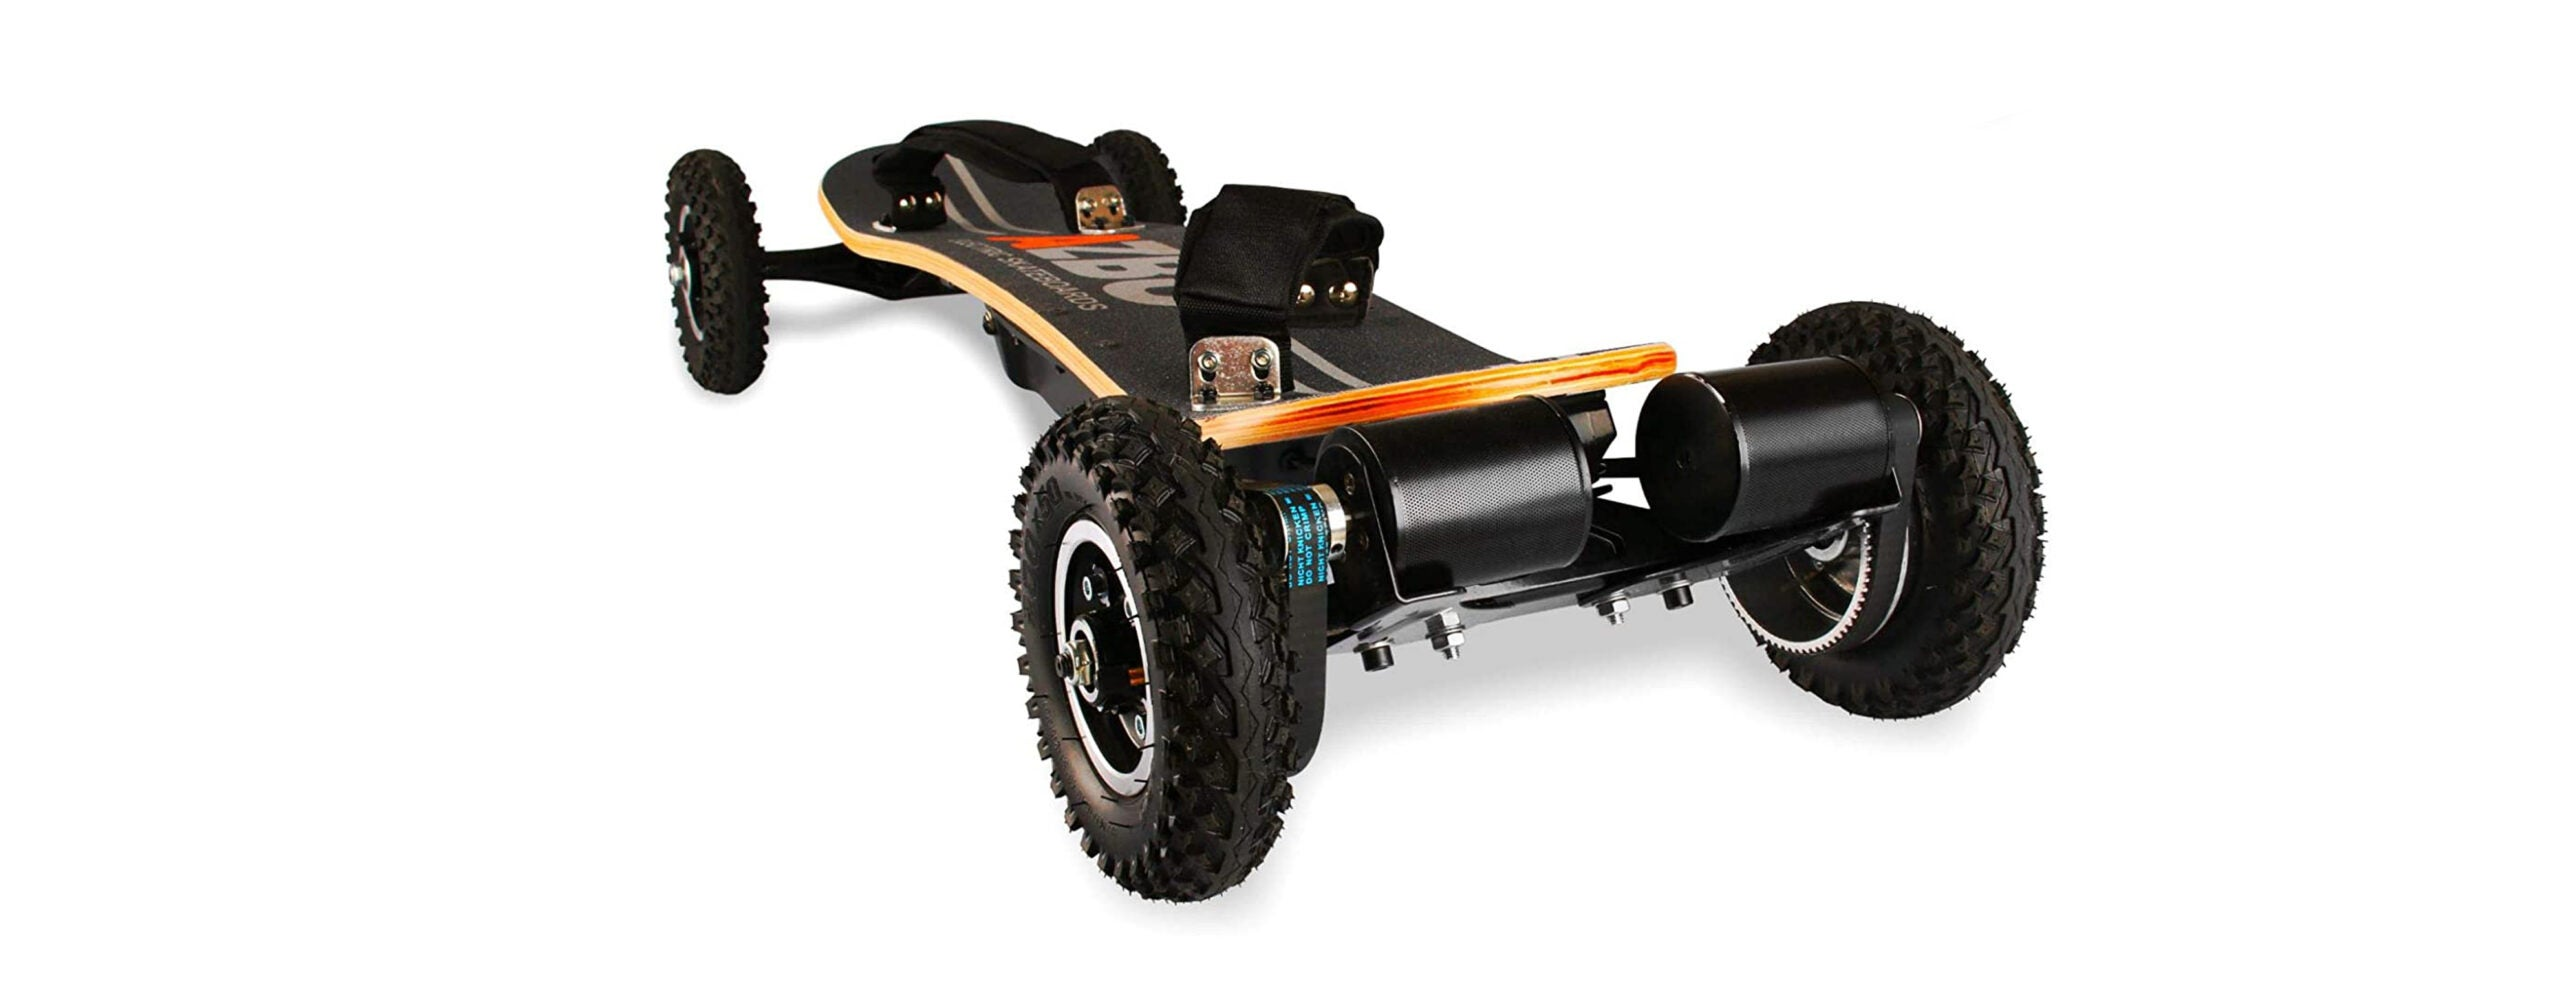 The Best Off Road Electric Skateboards (Review) in 2020